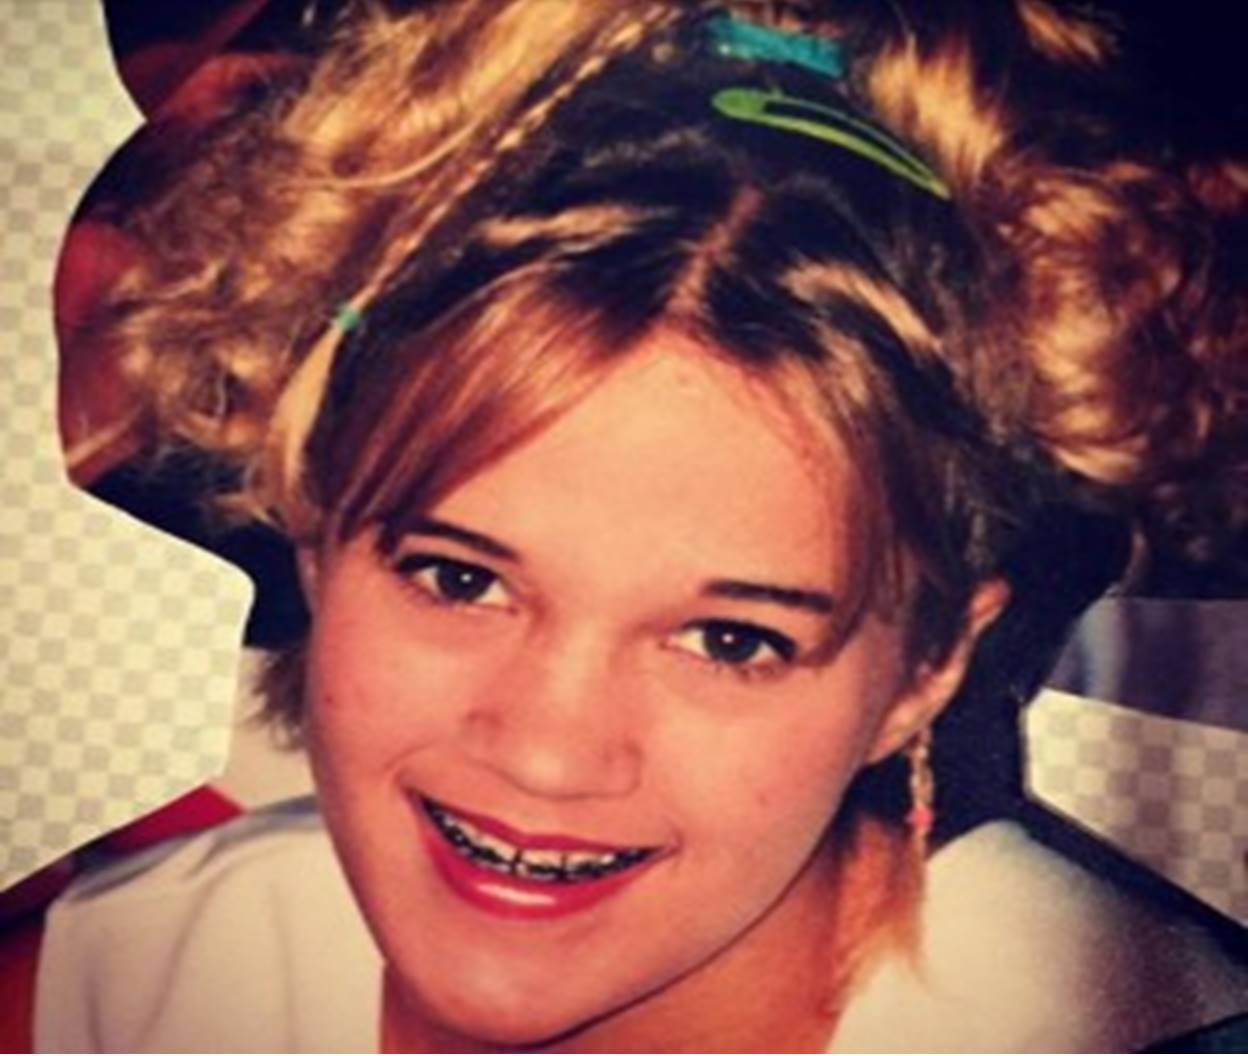 13-year-old Carrie Underwood